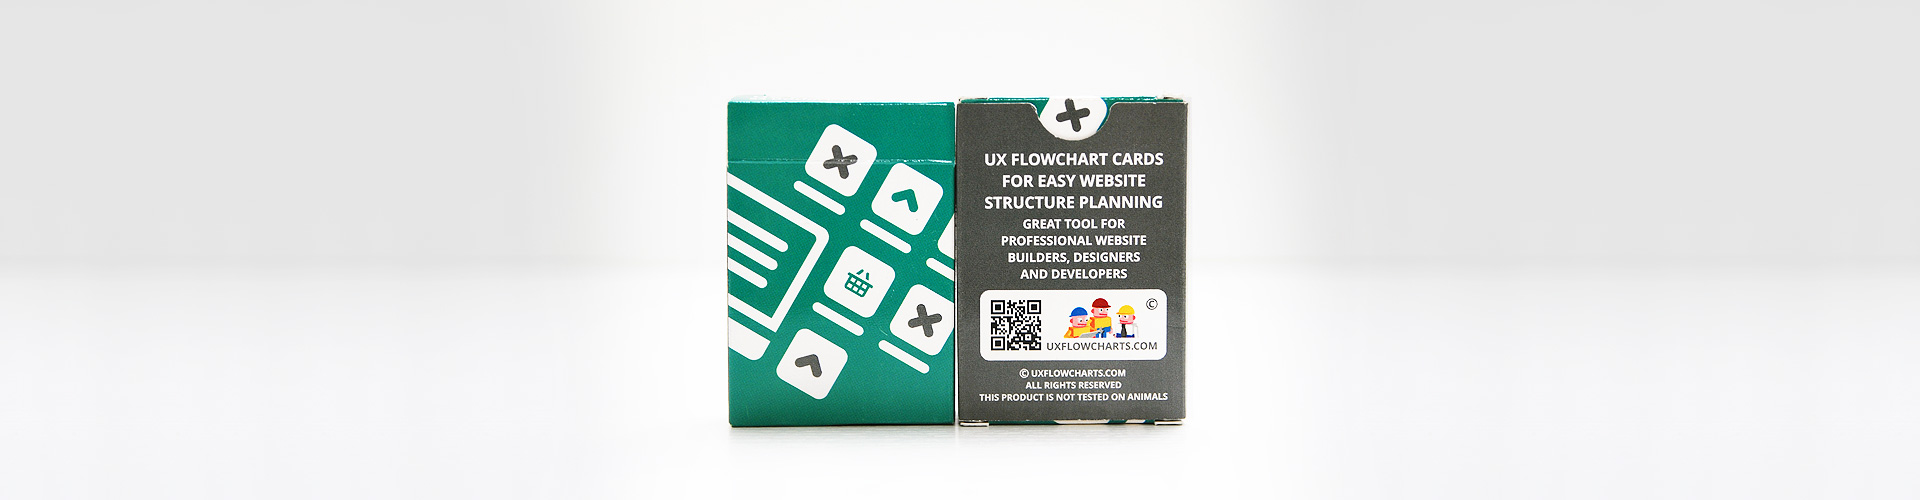 ux_cards_02